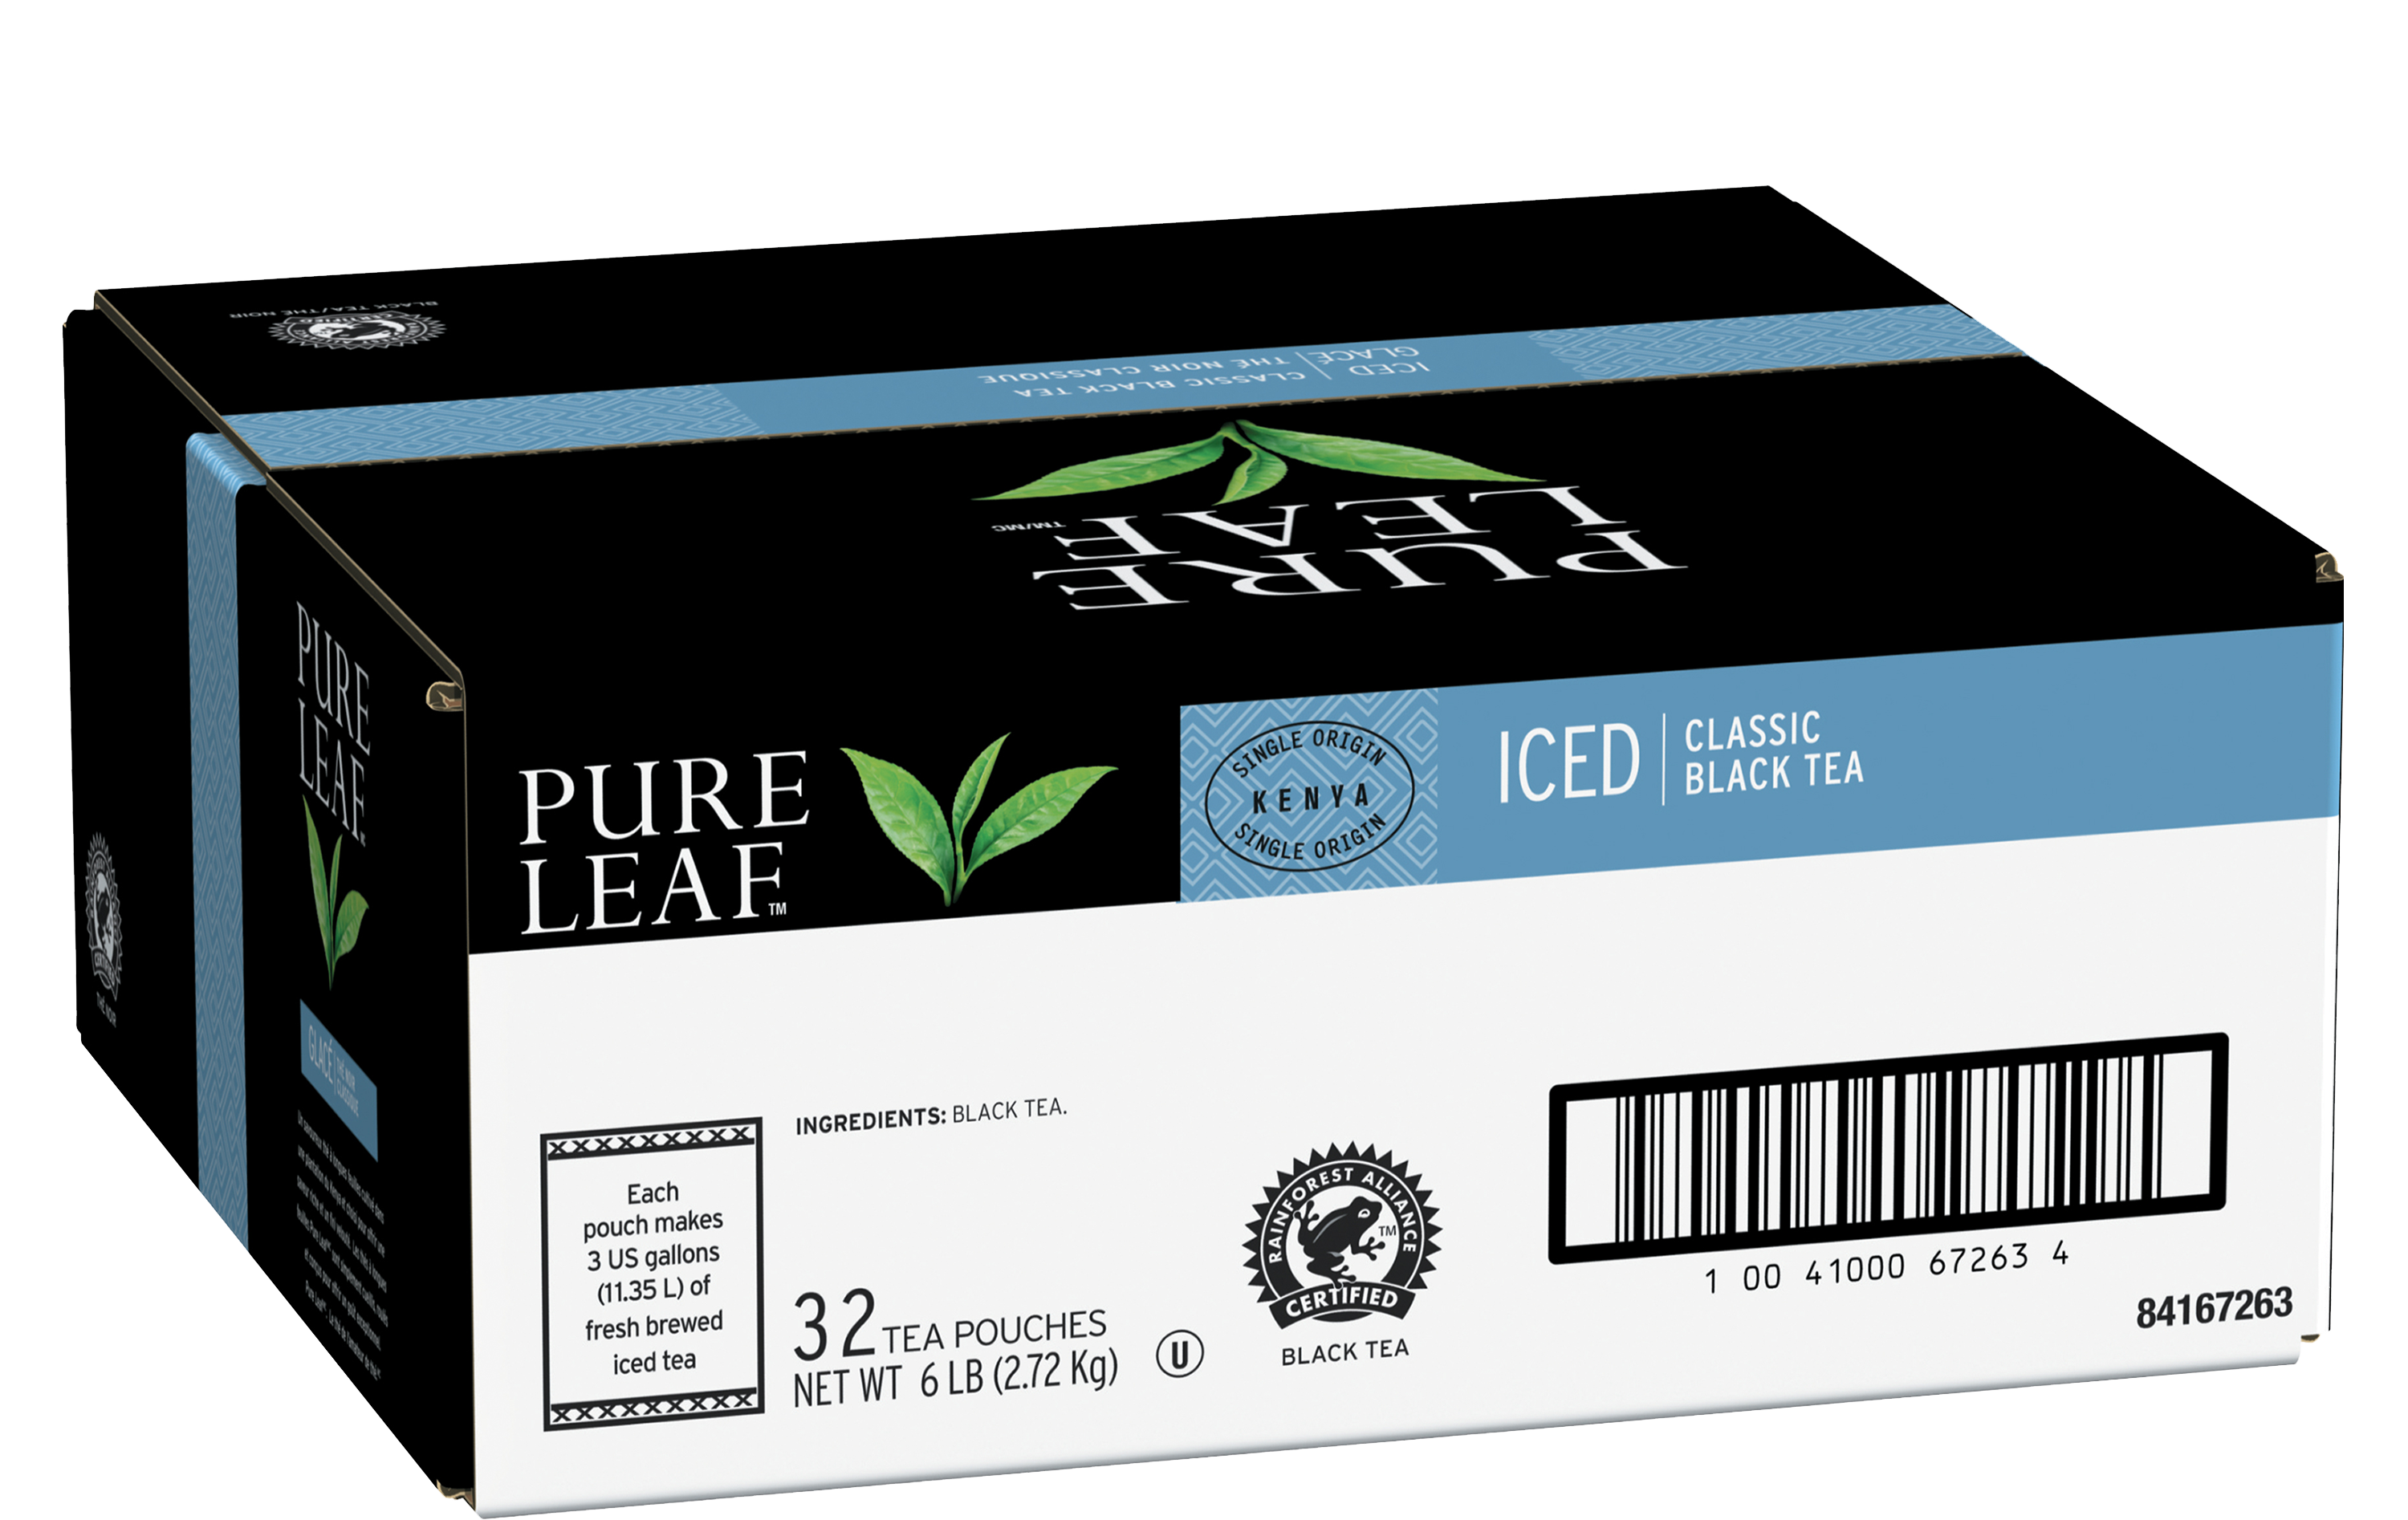 Pure Leafᴹᶜ Iced Classic Black Tea